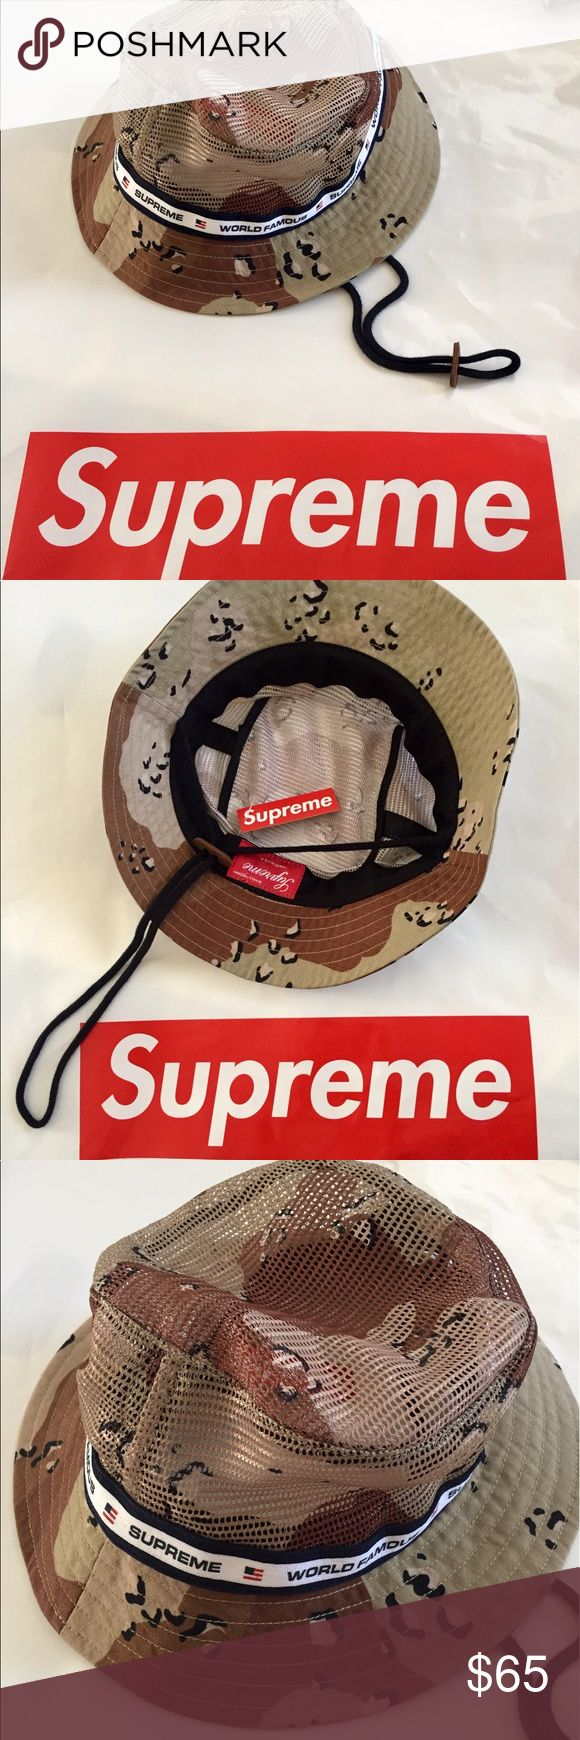 Supreme Bucket Hat Awesome supreme Camouflage bucket hat. Supreme Accessories Hats